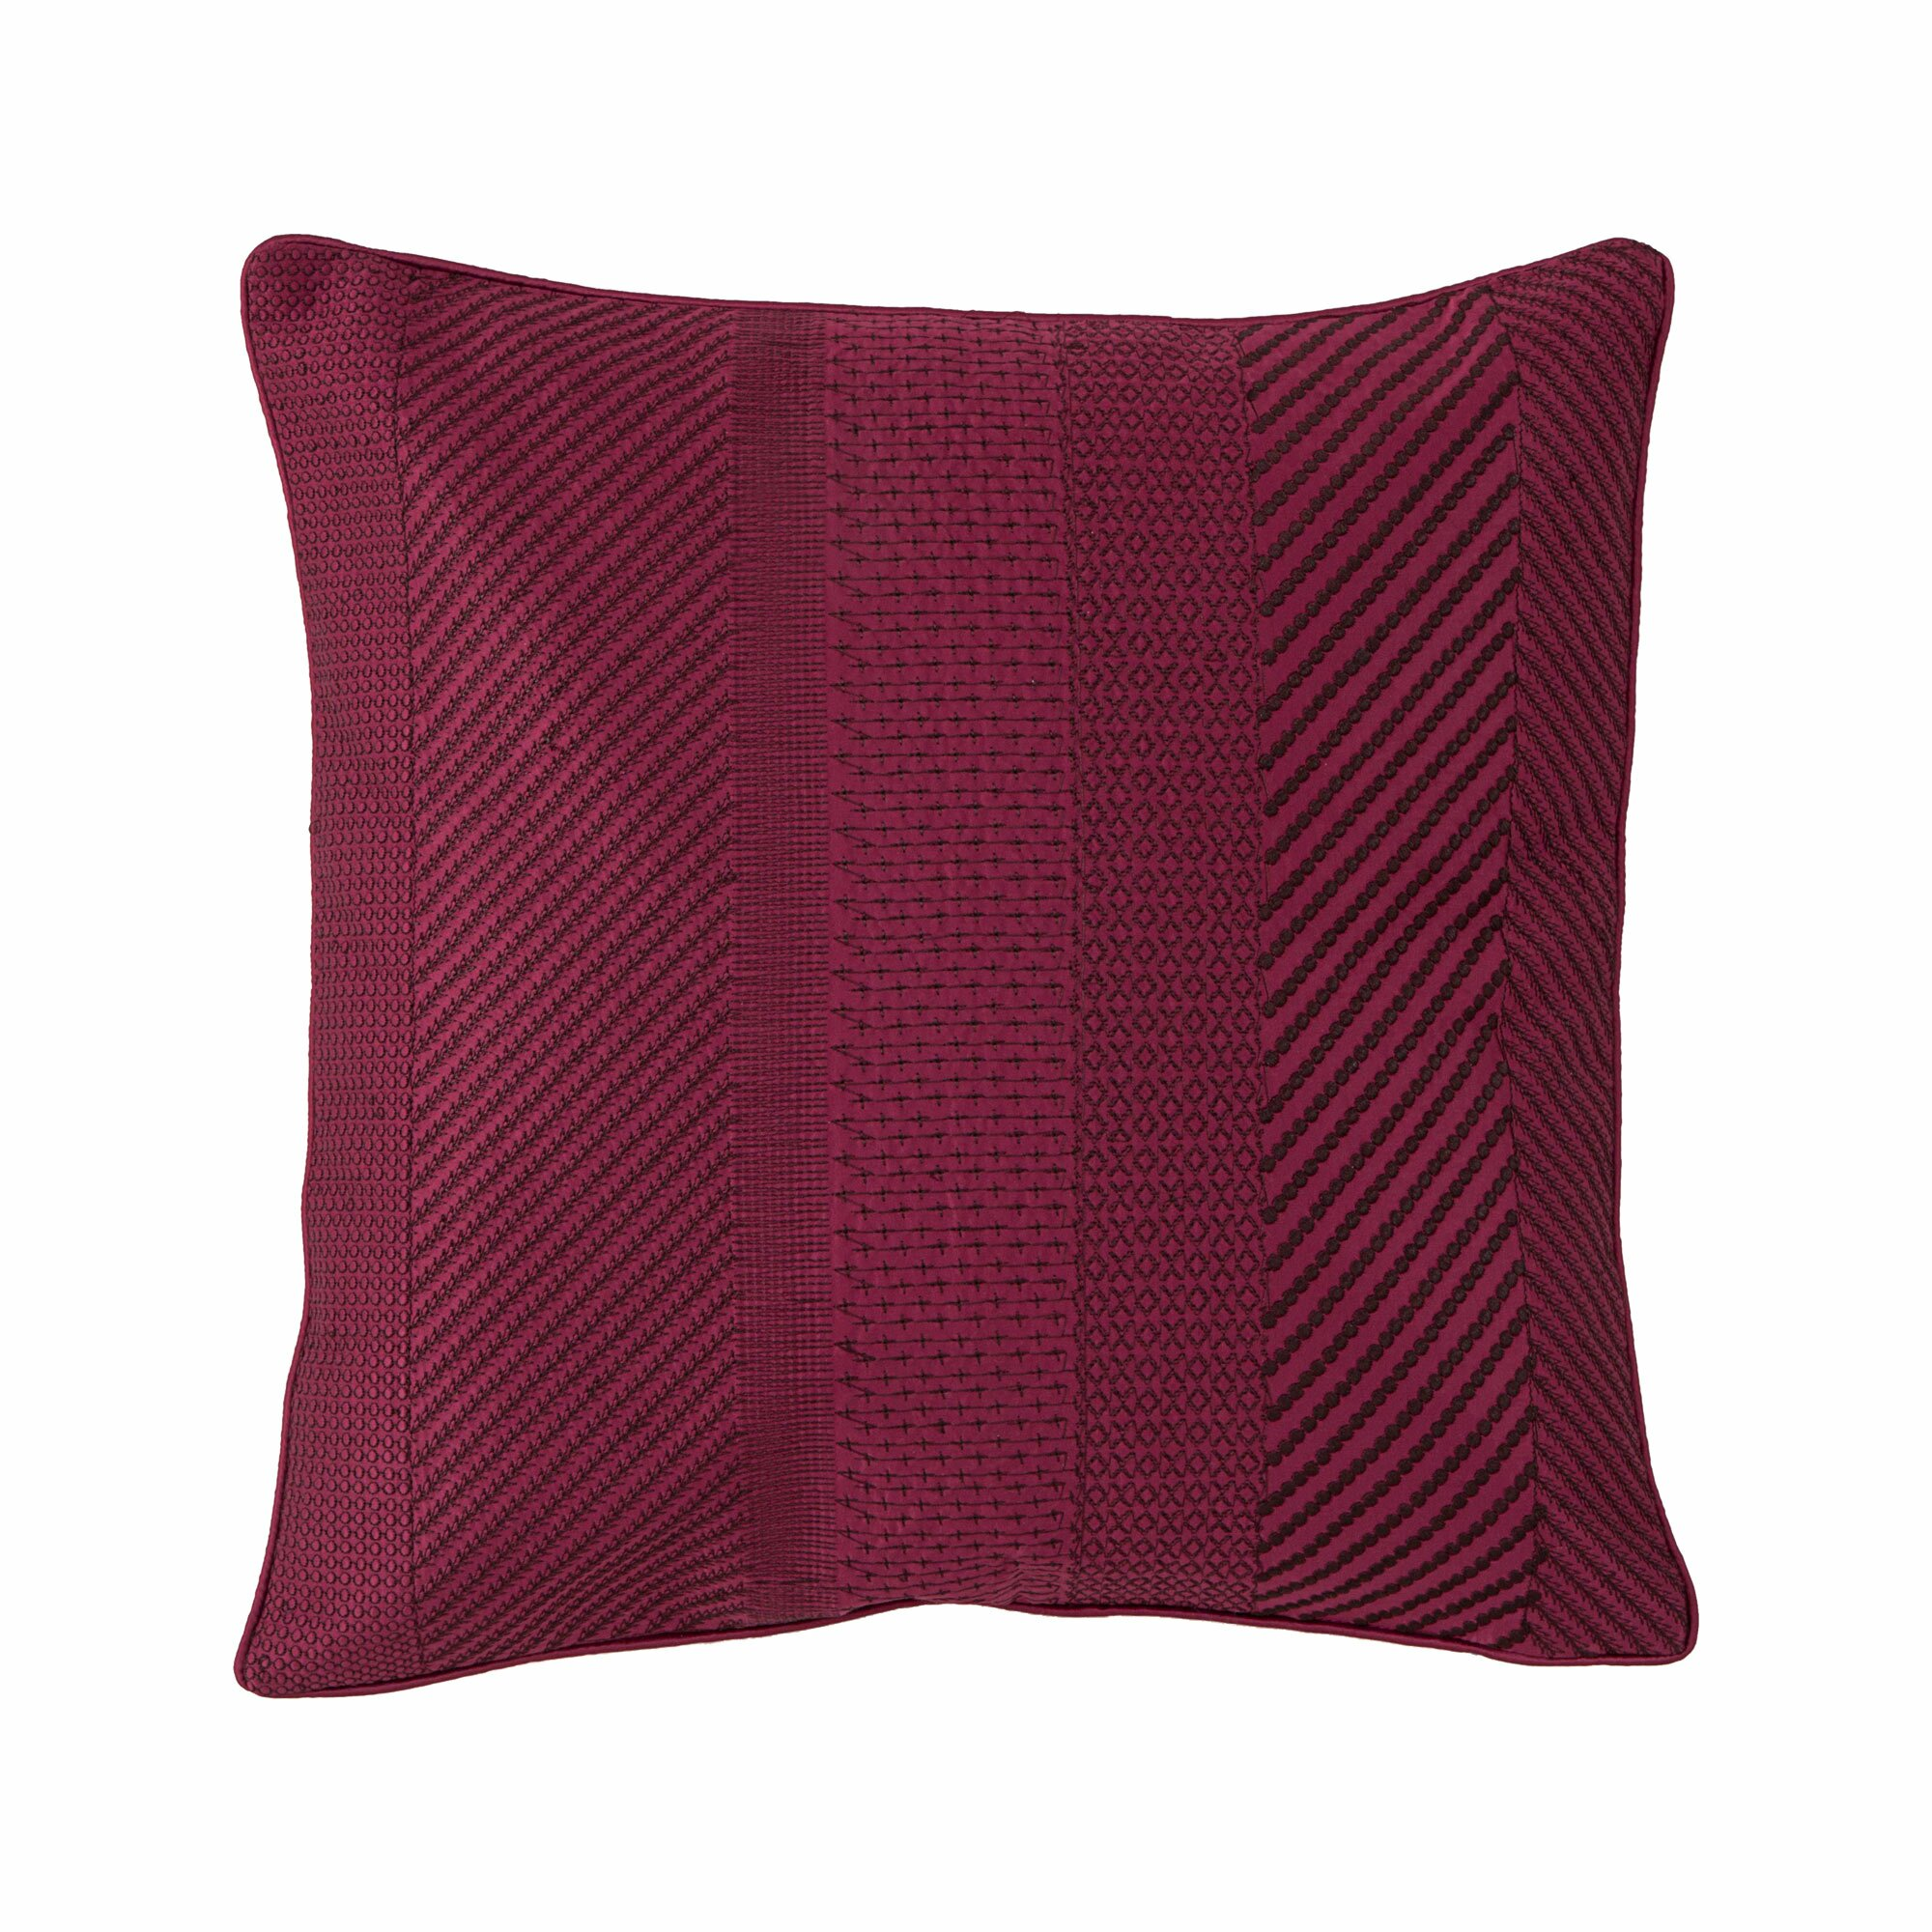 Embroidered Decorative Pillow : Collier Campbell Ziggurat Geo Embroidered Decorative Throw Pillow & Reviews Wayfair